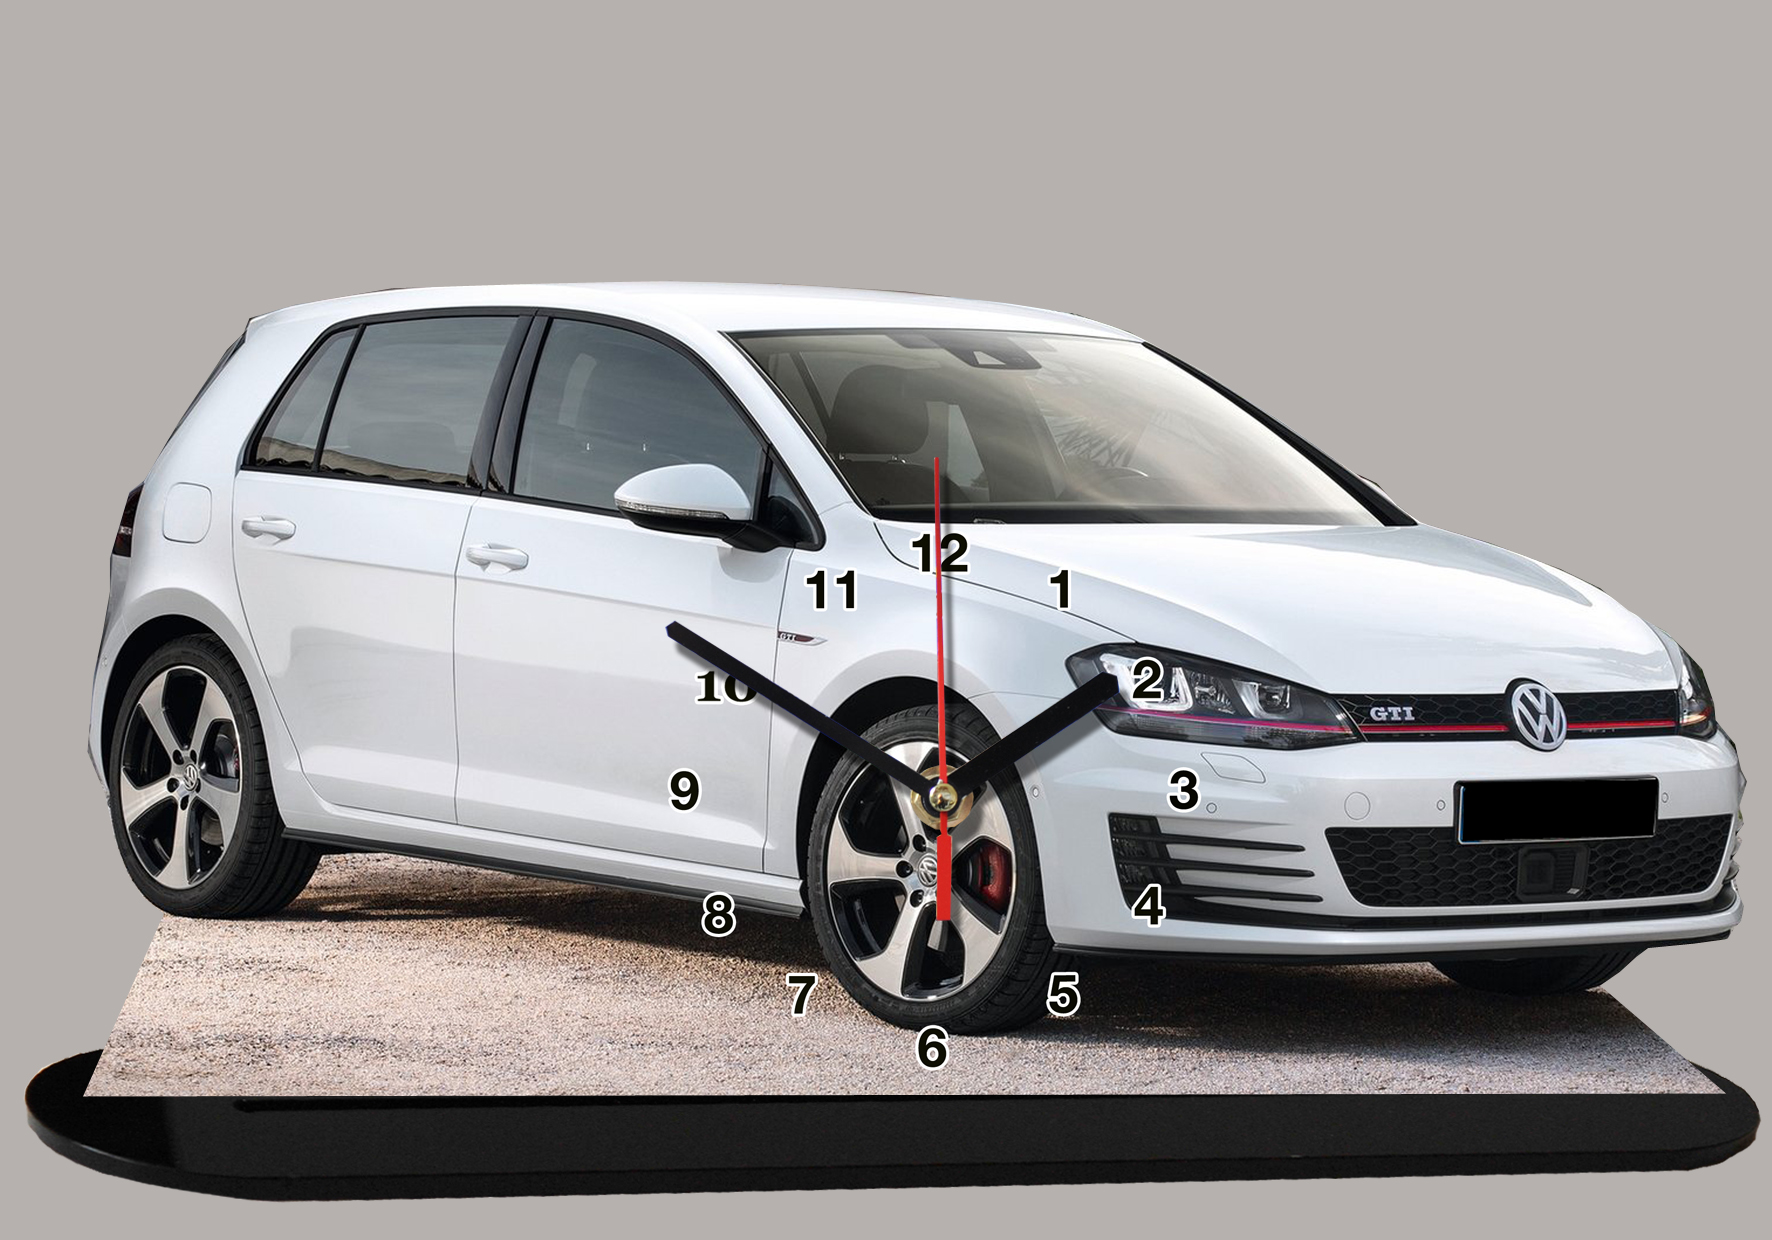 volkswagen golf gti vi blanche en auto horloge miniature. Black Bedroom Furniture Sets. Home Design Ideas